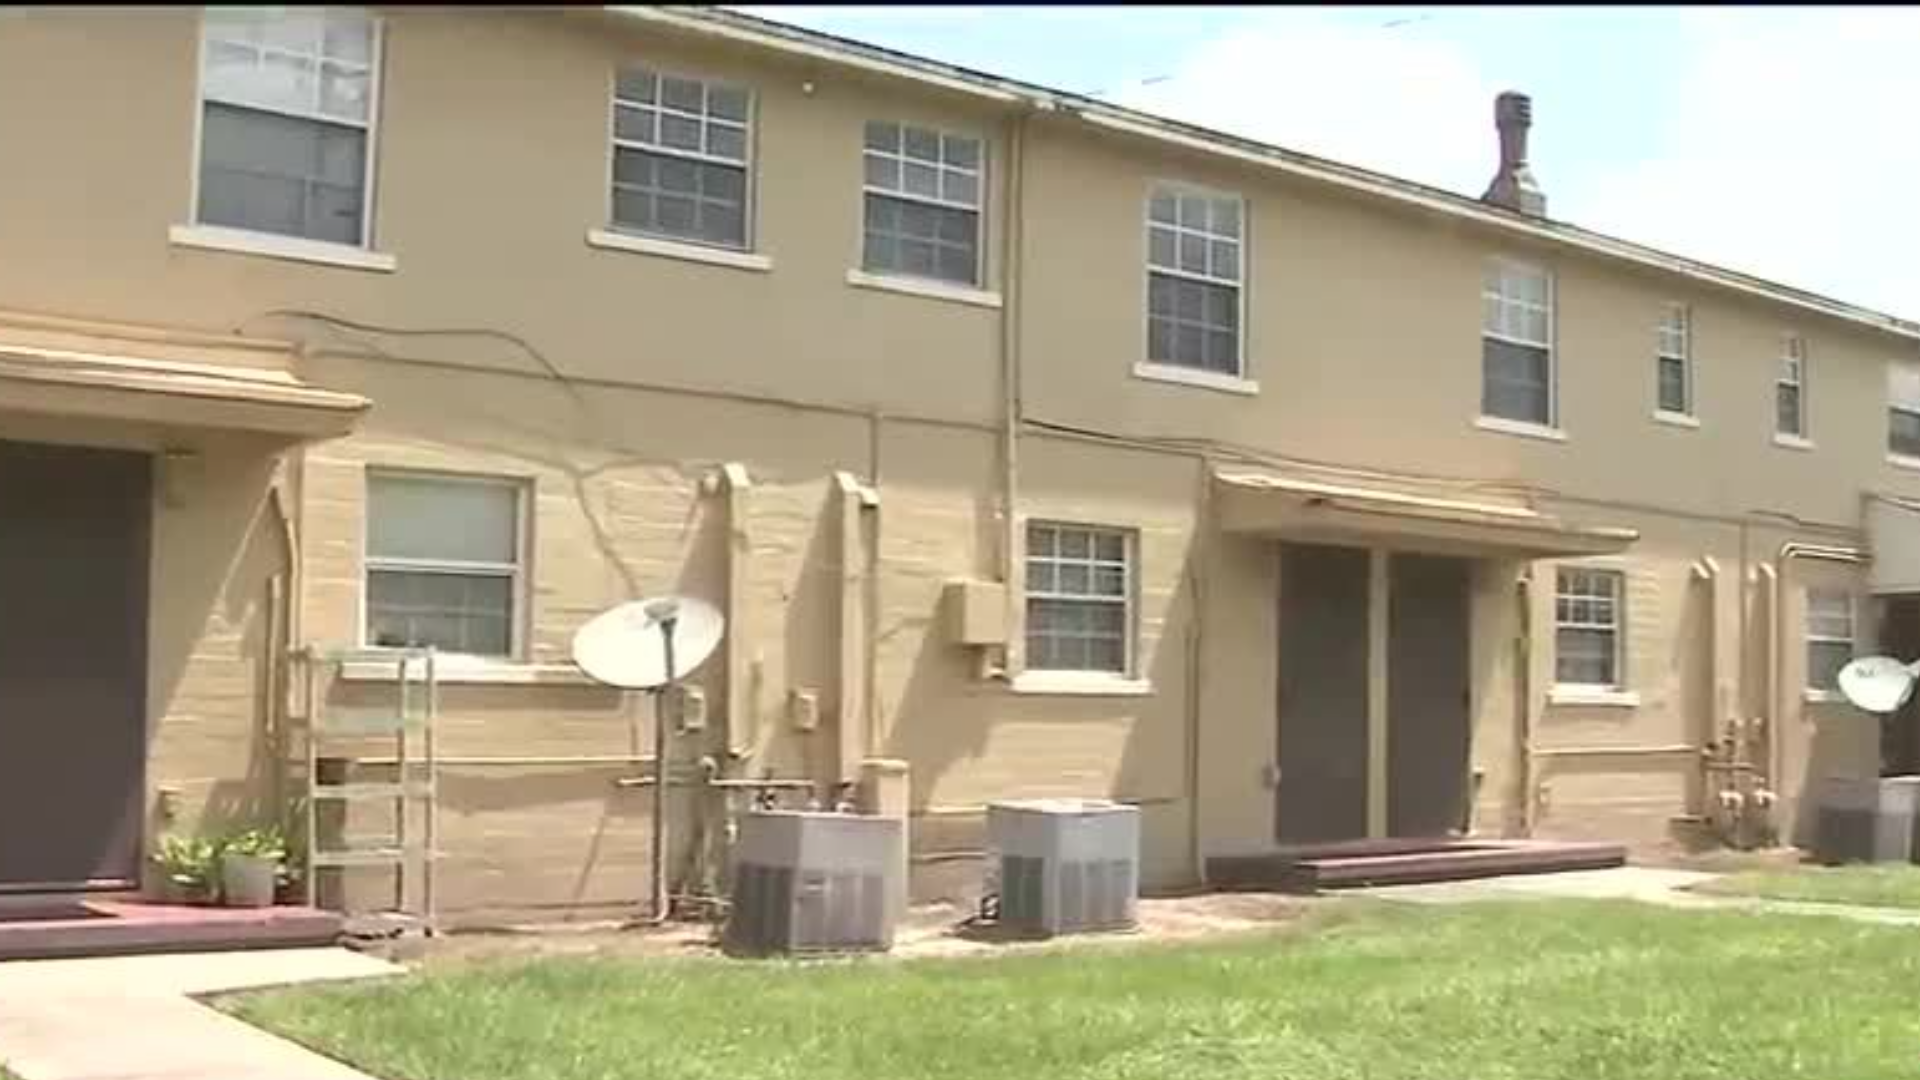 Orlando's first public housing sees deplorable conditions, faces demolition